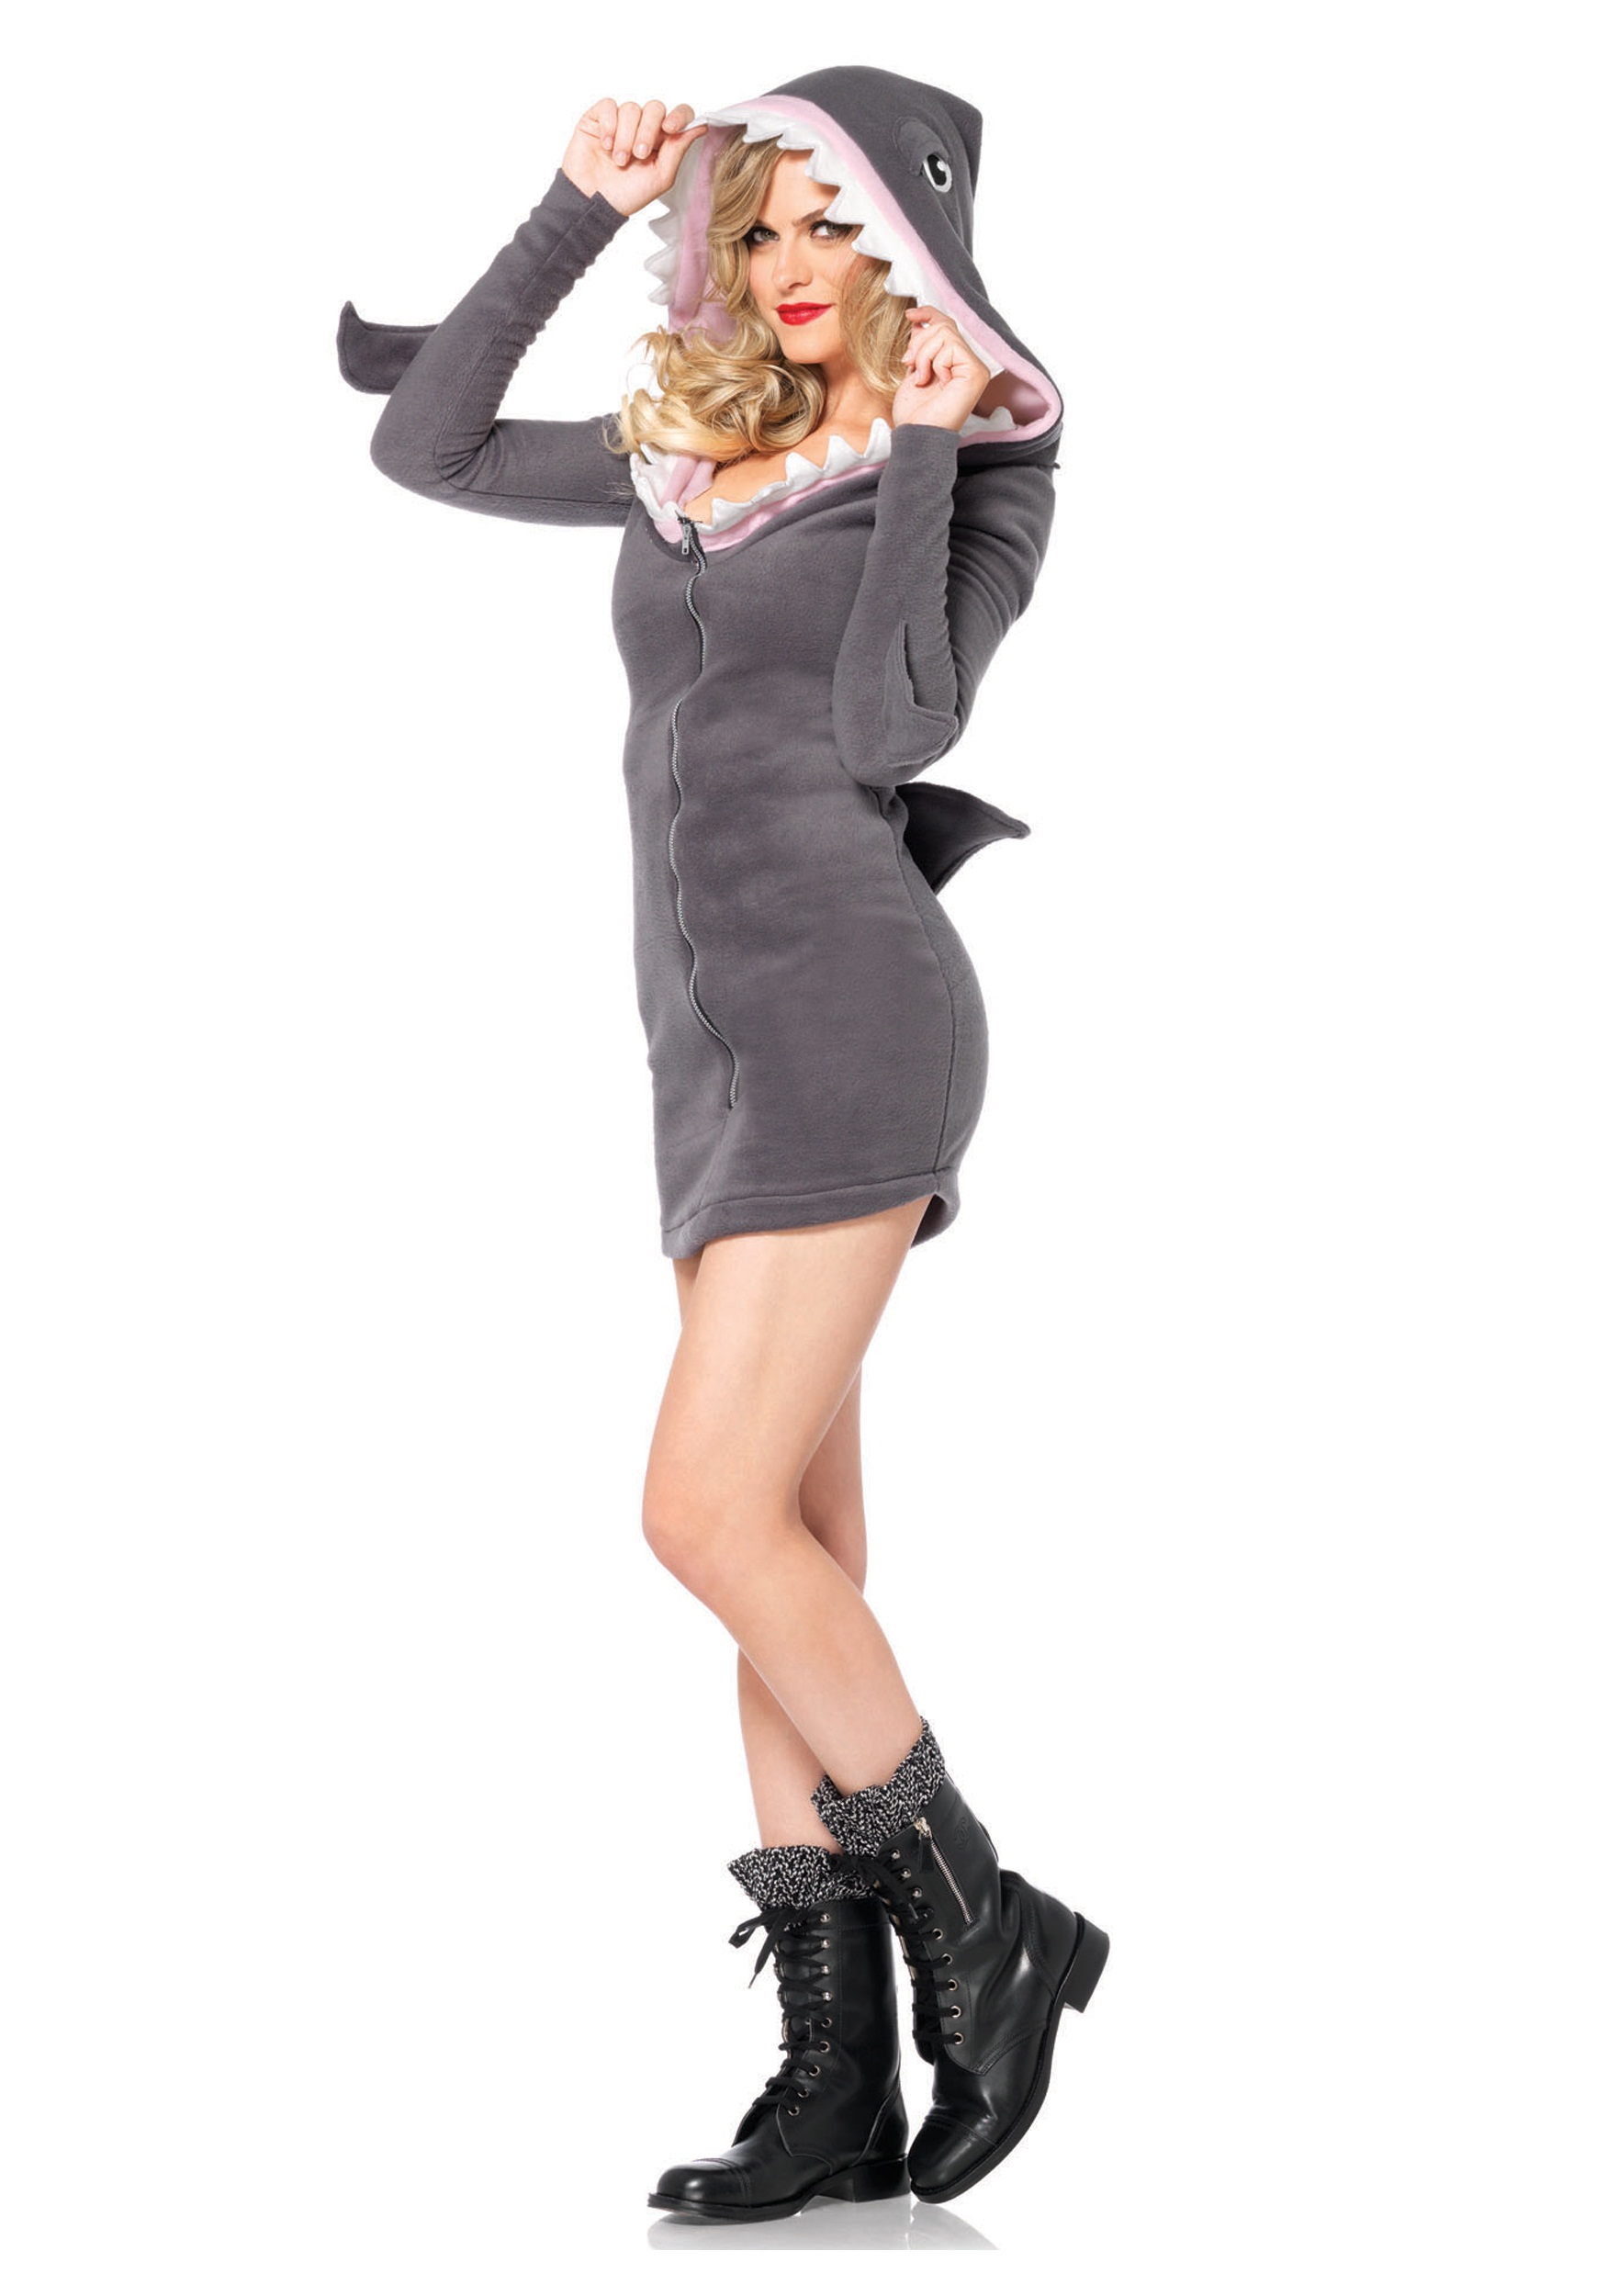 They'll all be trying to get trapped in your jaws in this Sexy Shark costume featuring a metallic silver mini dress with gill print sides, attached hood with shark teeth lining and attached shark fin.